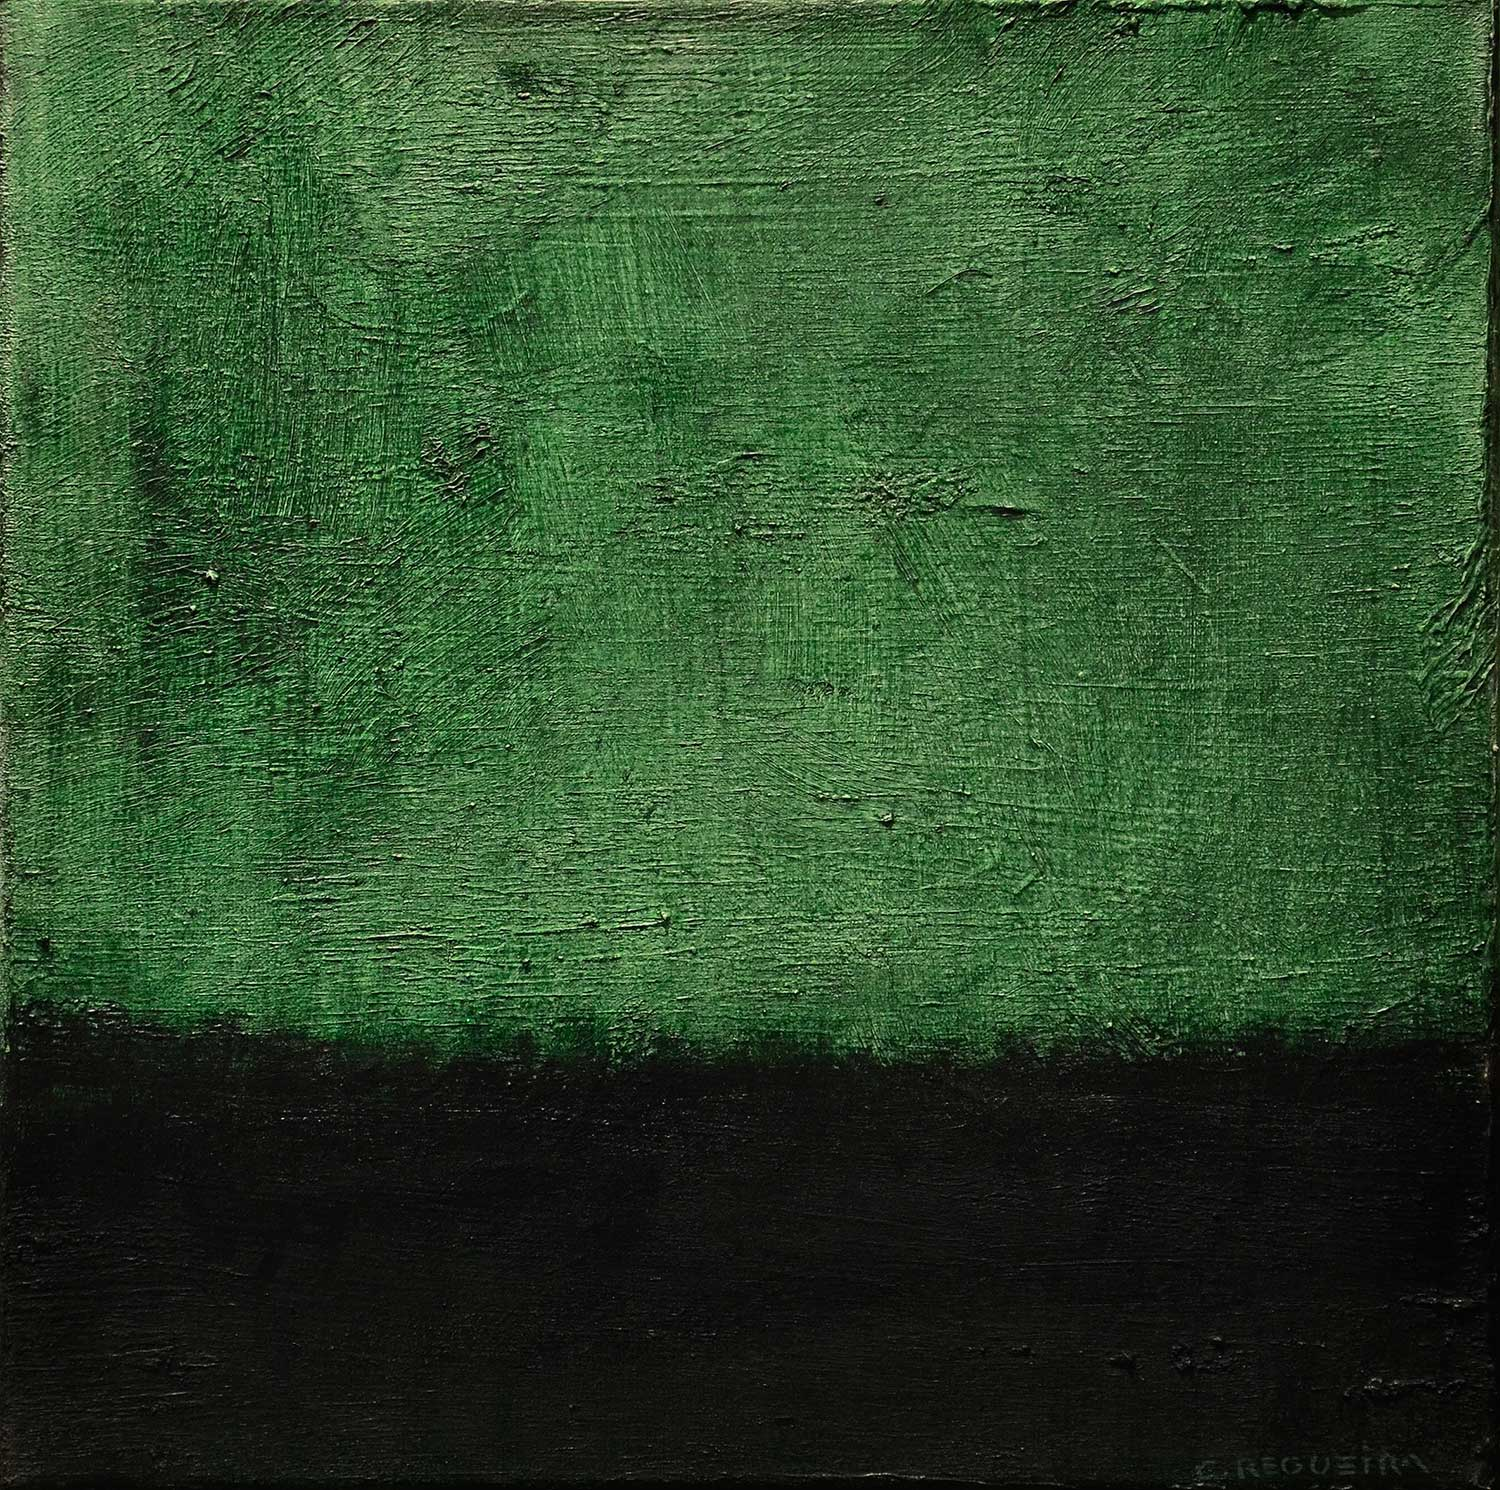 """Paisaje verde y negro / Green and black landscape"""